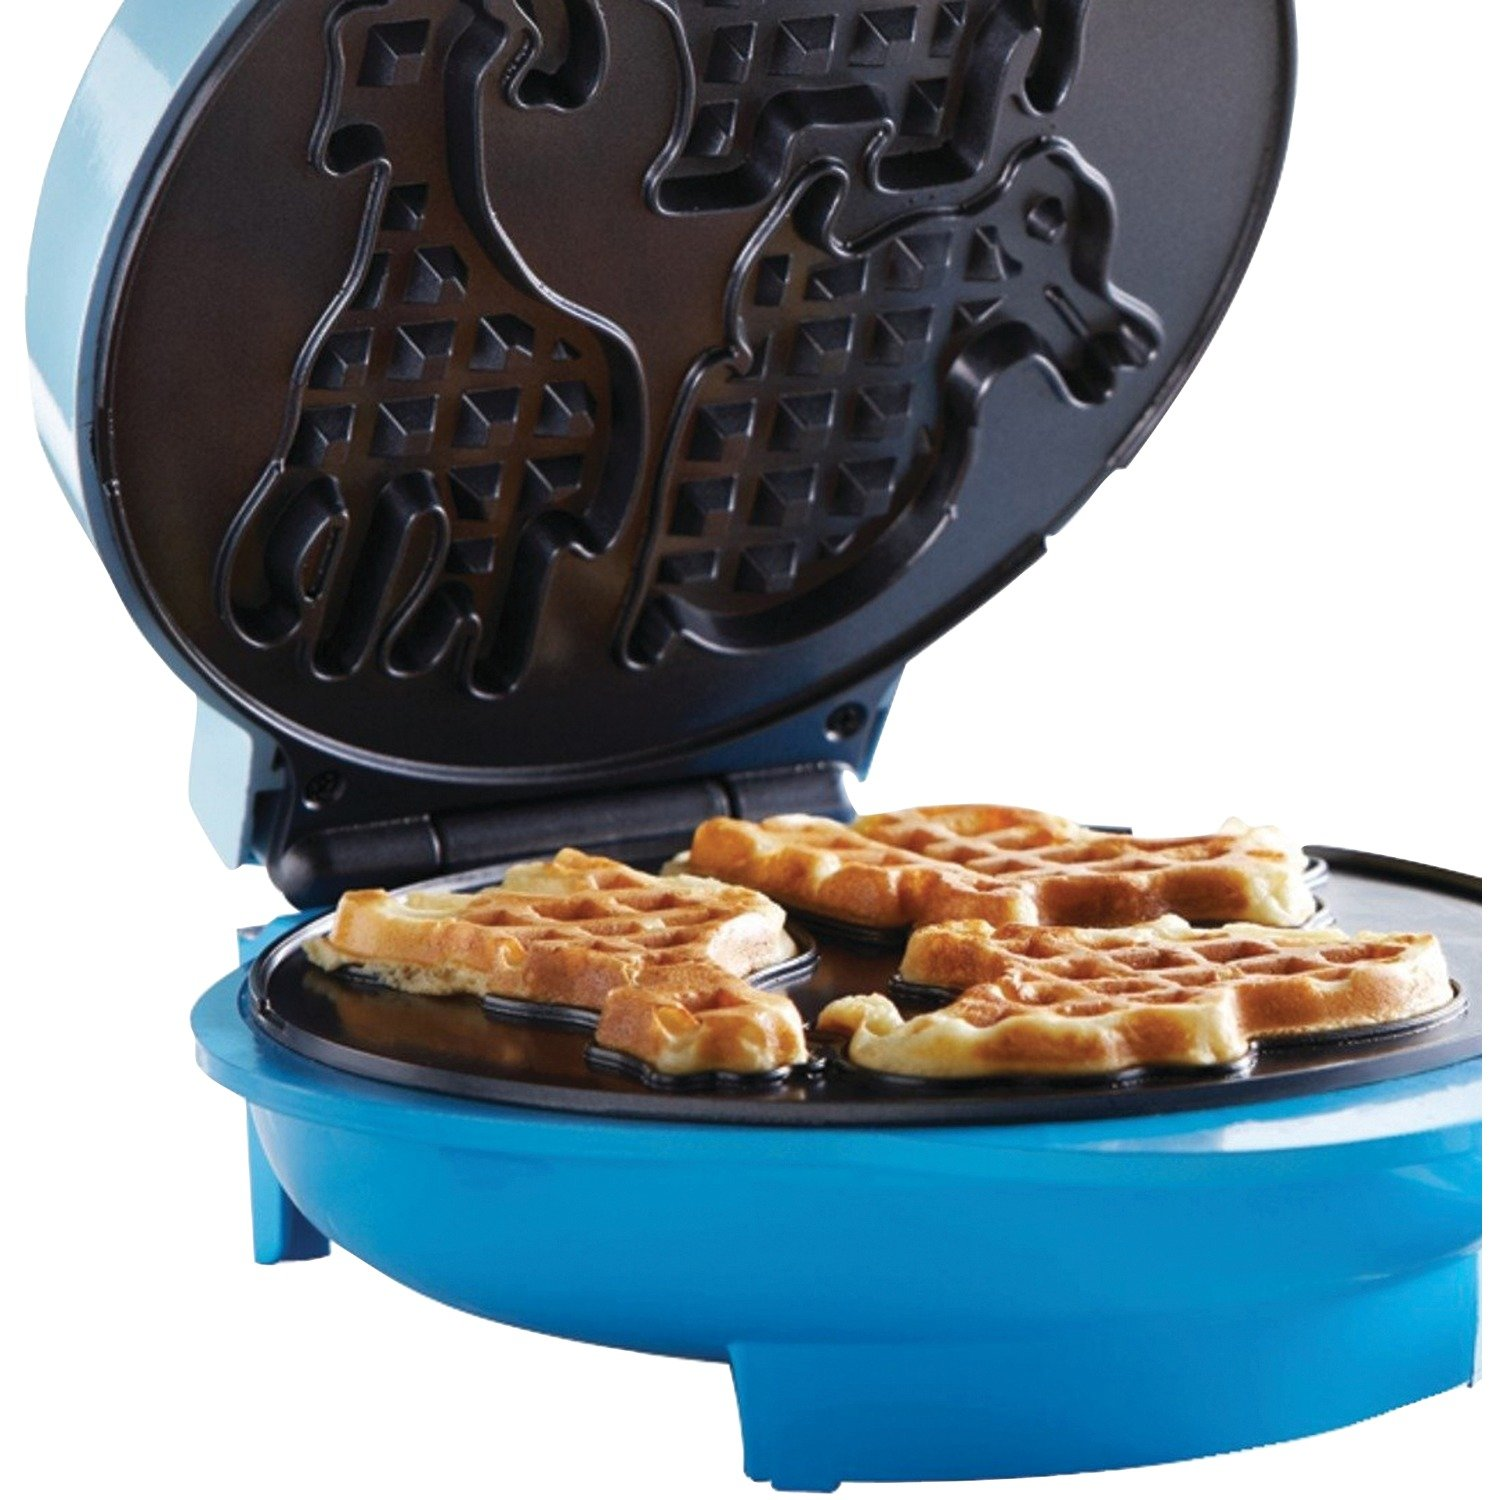 Brentwood TS-253 Appliances Electric Food Maker-Animal-Shapes Waffle Maker, Blue by Brentwood (Image #6)